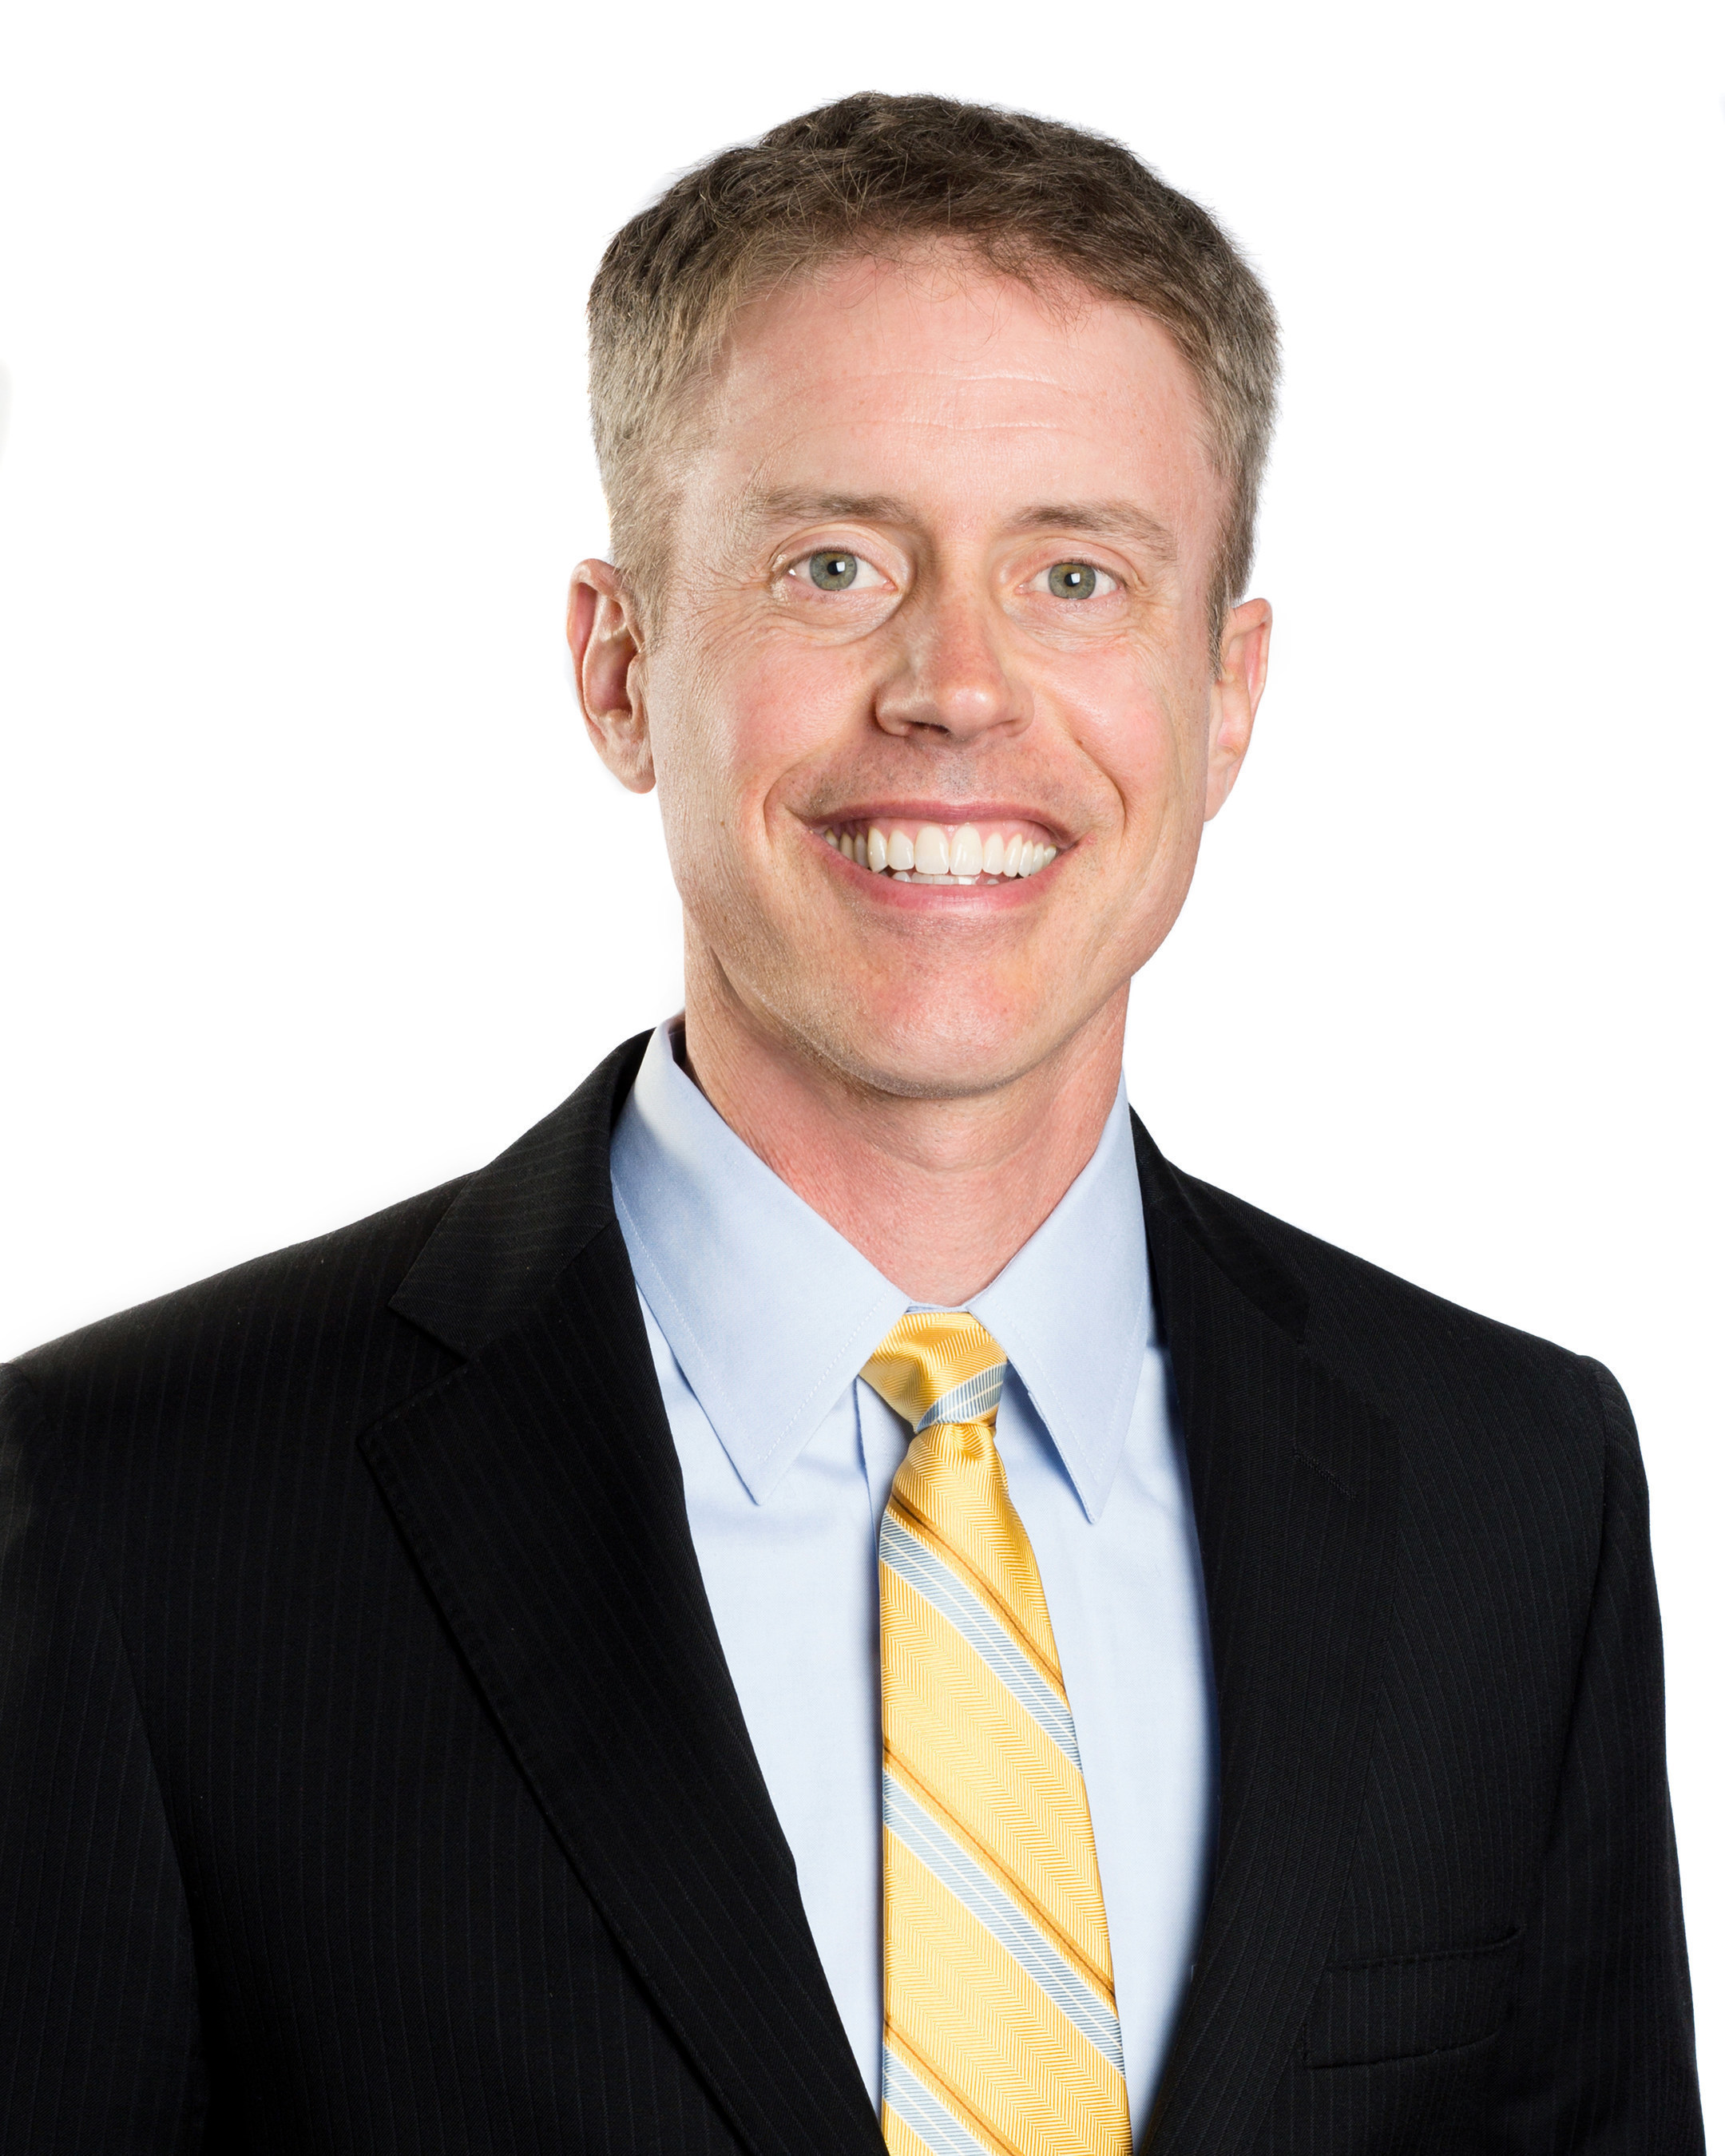 Kevin Baum, USCF Chief Investment Officer